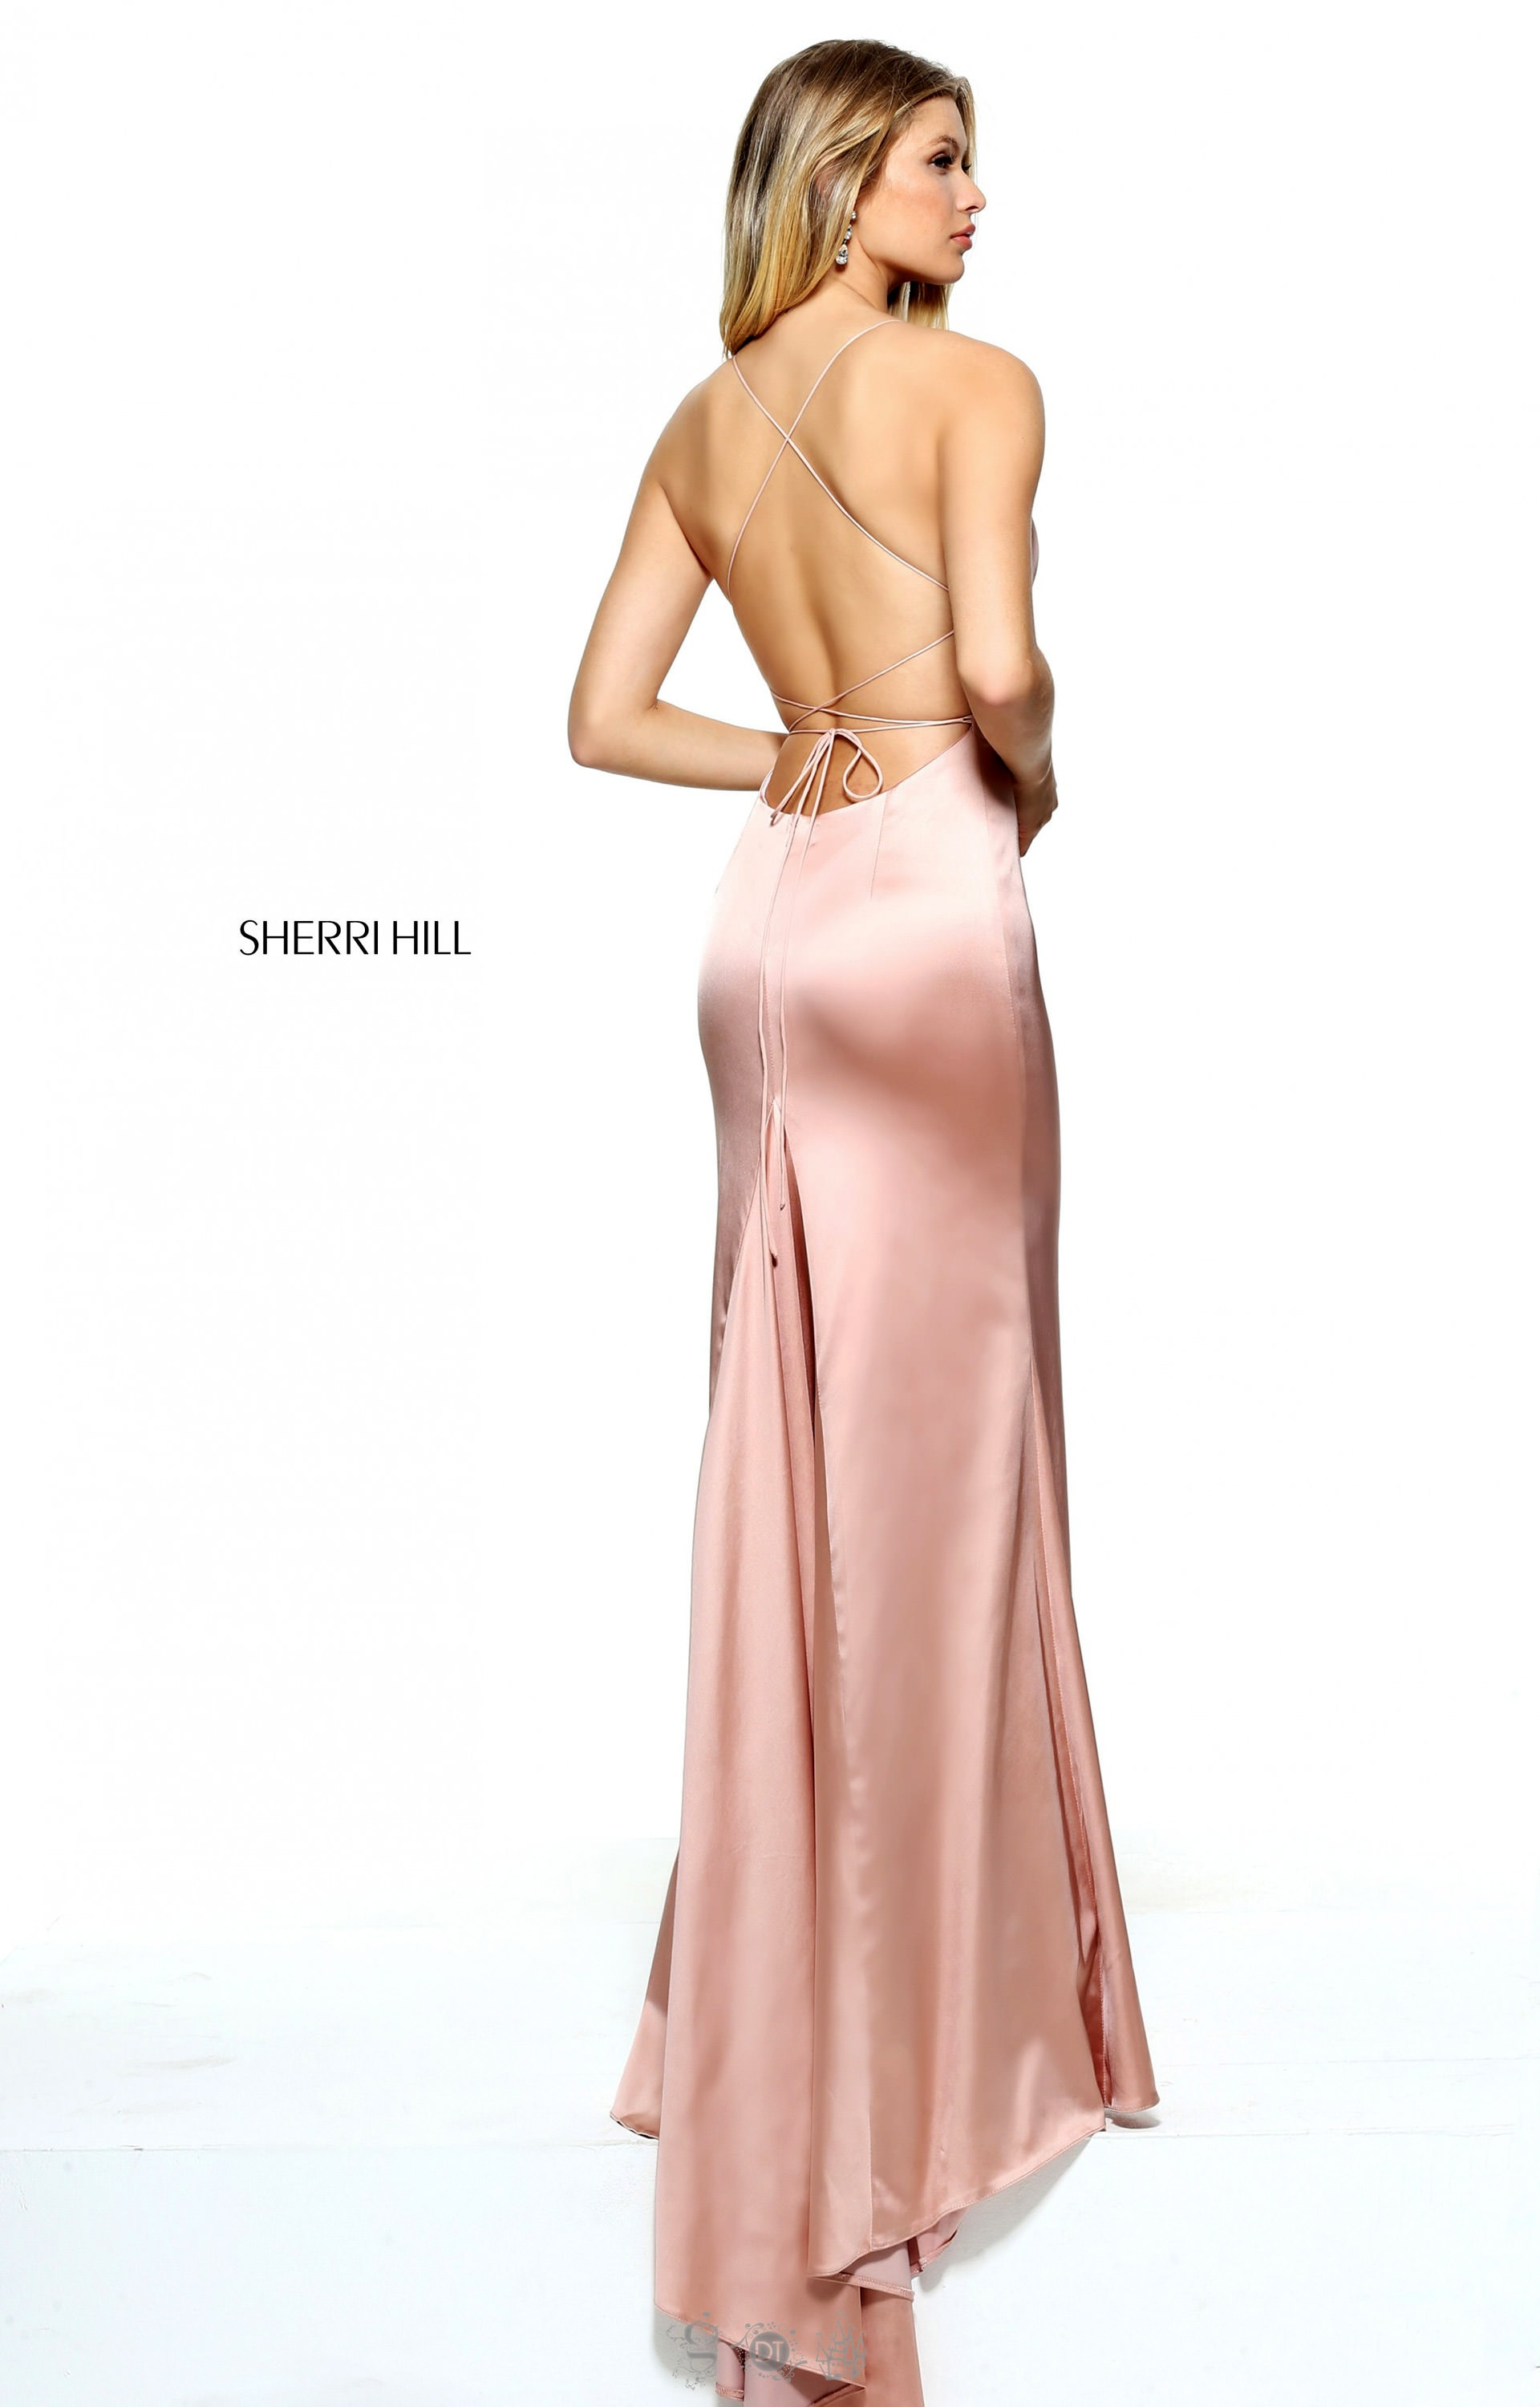 Sherri Hill 51006 - Fitted Satin with Spaghetti Straps and